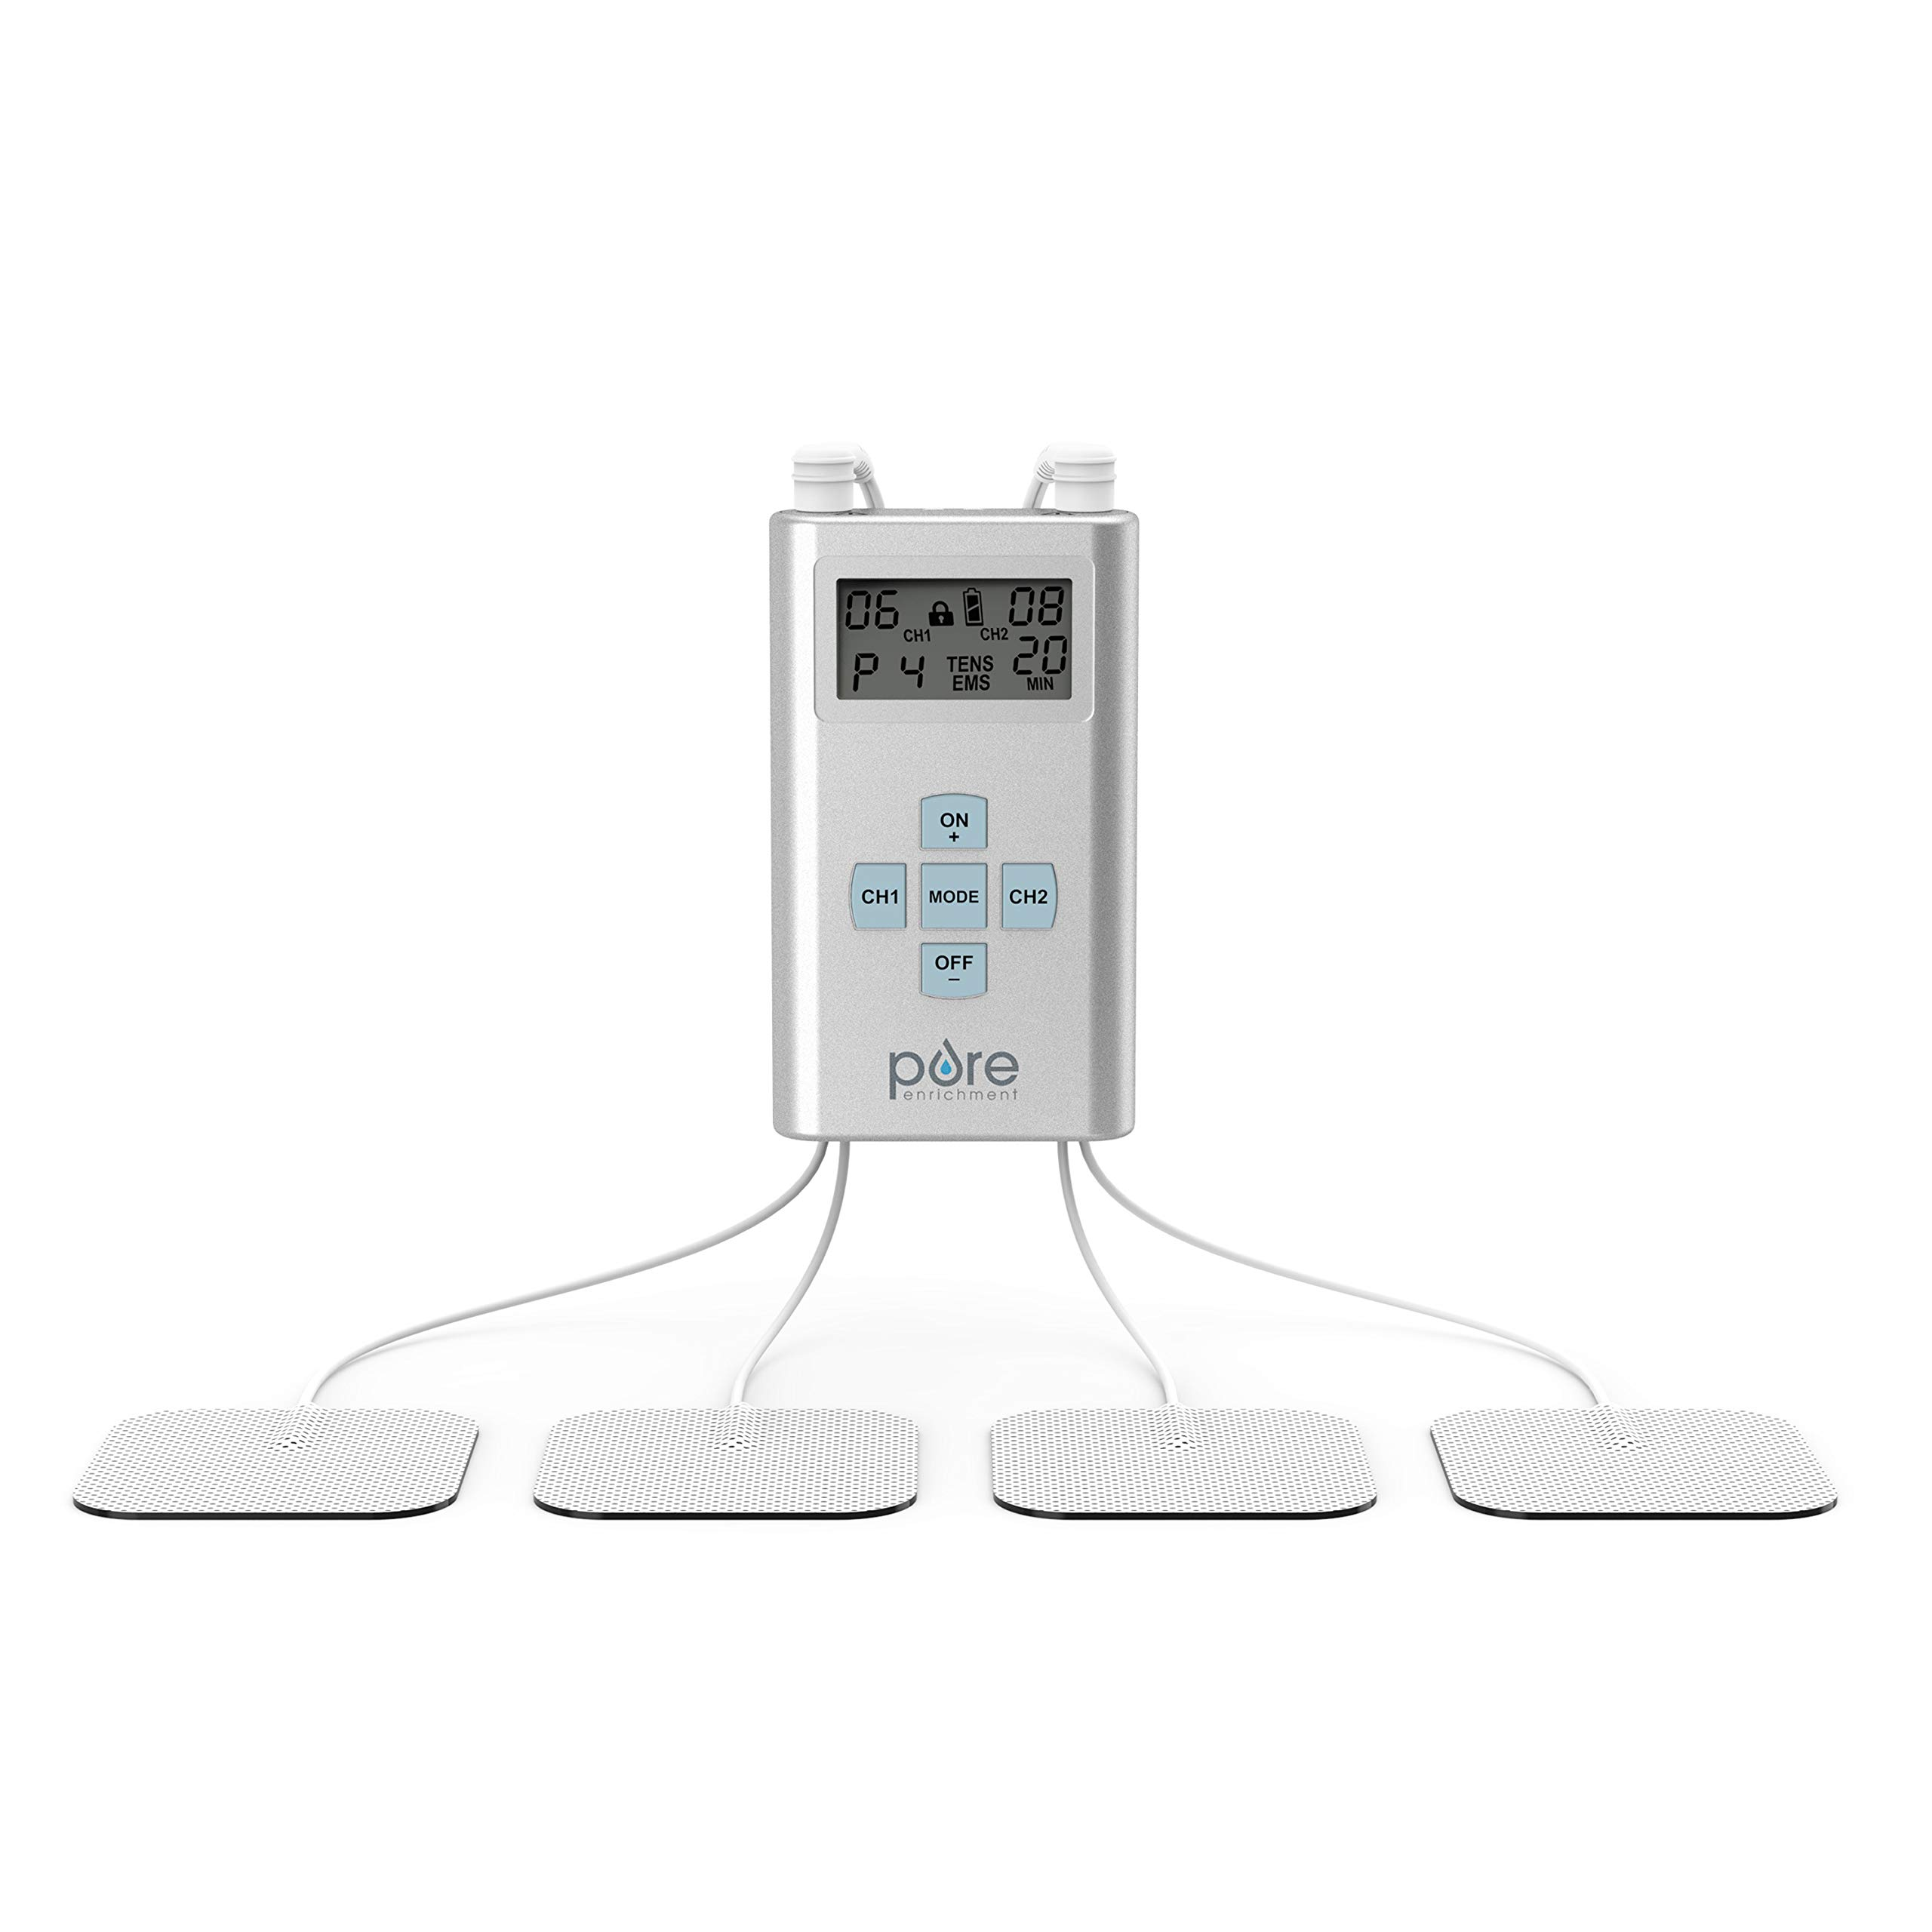 Pure Enrichment PurePulse Pro Advanced TENS Device with LCD Display, 8 Therapy Programs, 25 Pulse Settings, Adjustable Timer and 2 Channels - Includes 2 AAA Batteries, 4 Electrode Pads and Storage Bag